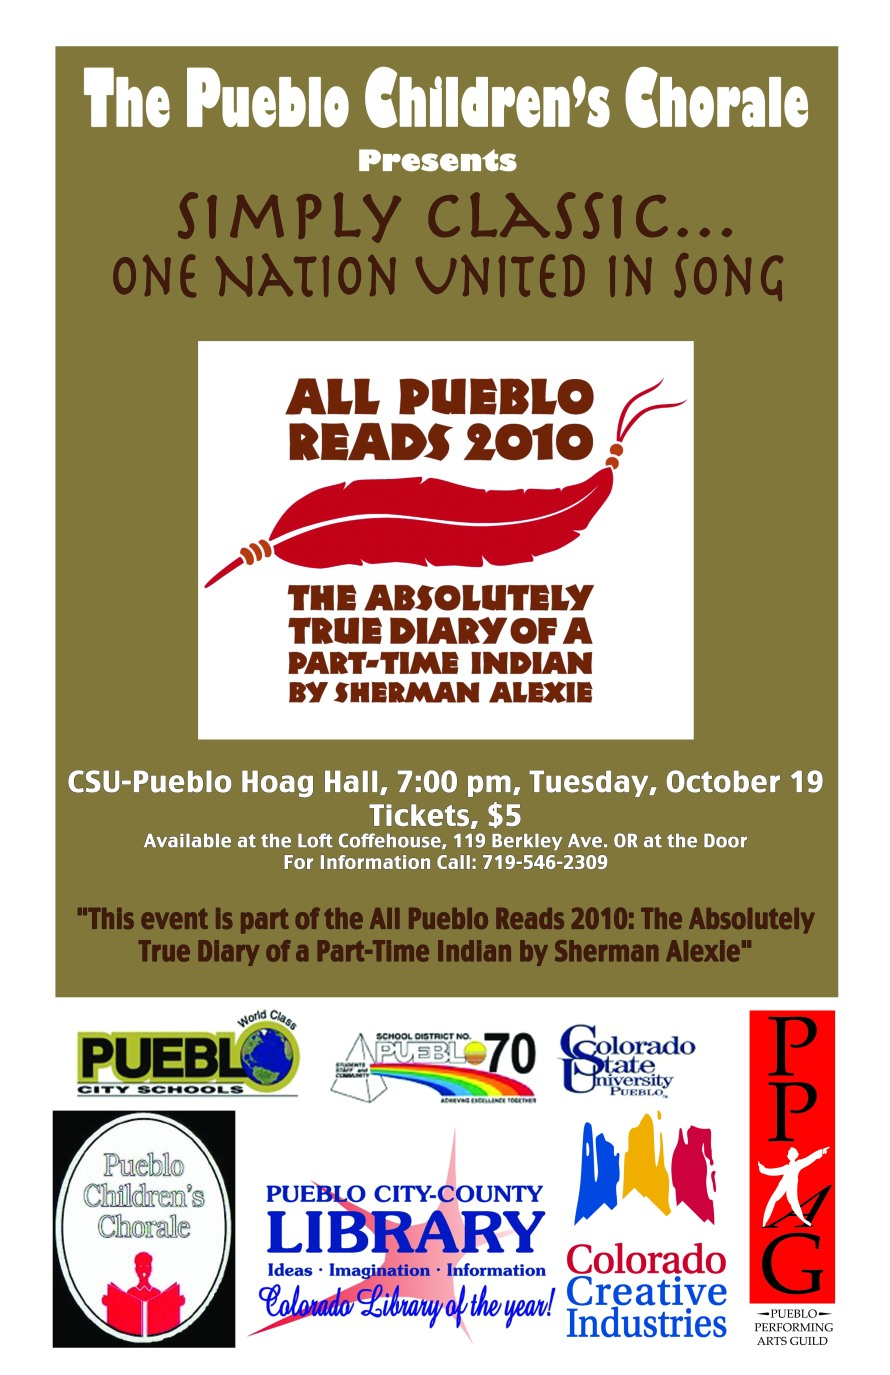 Pueblo Children's Chorale Poster - Graphics from That's Natural! Marketing